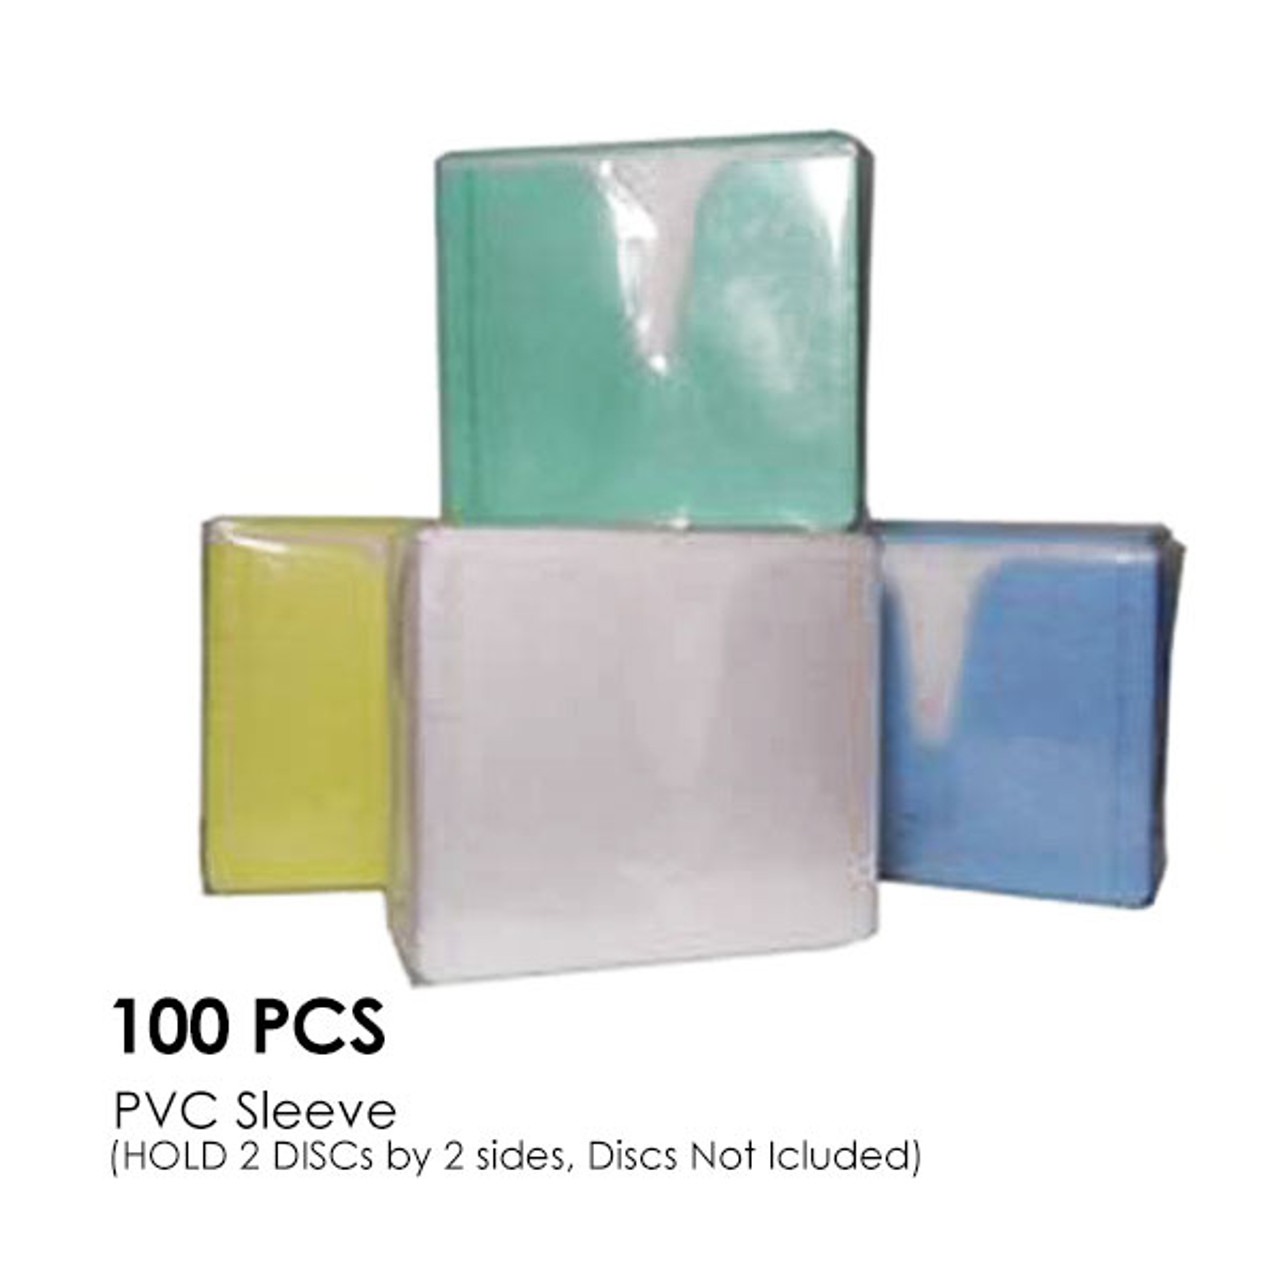 Product image for CD-DVD Colour PVC Sleeve Hold 2 Disc (Double Sided / 100PCS/Pack)   CX Computer Superstore